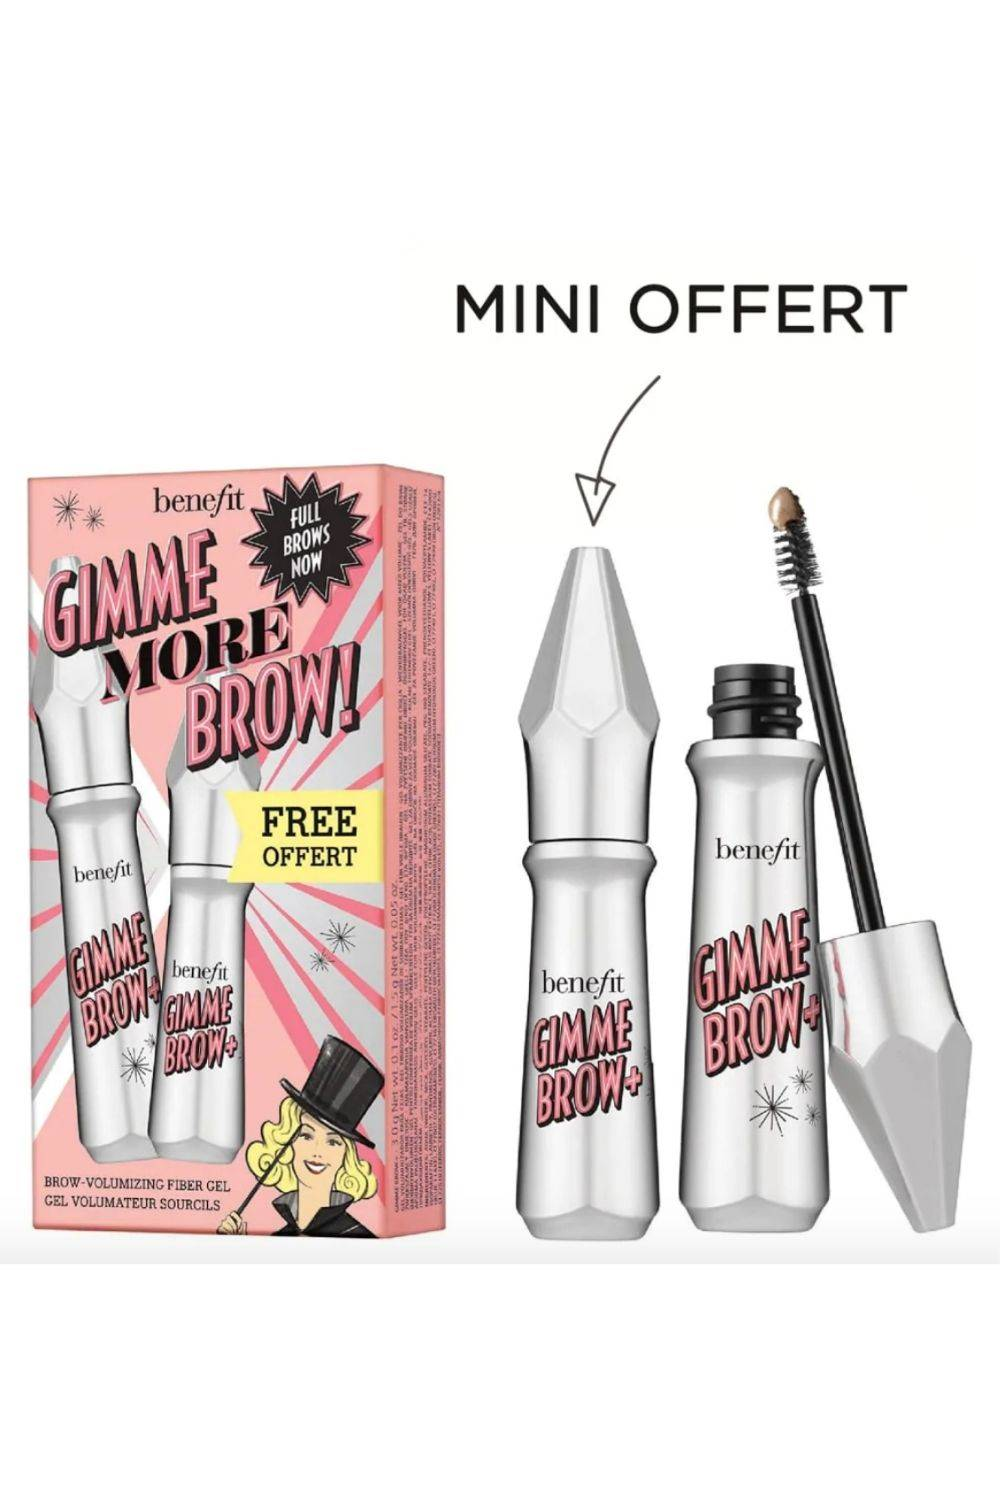 Kit de cejas de Benefit